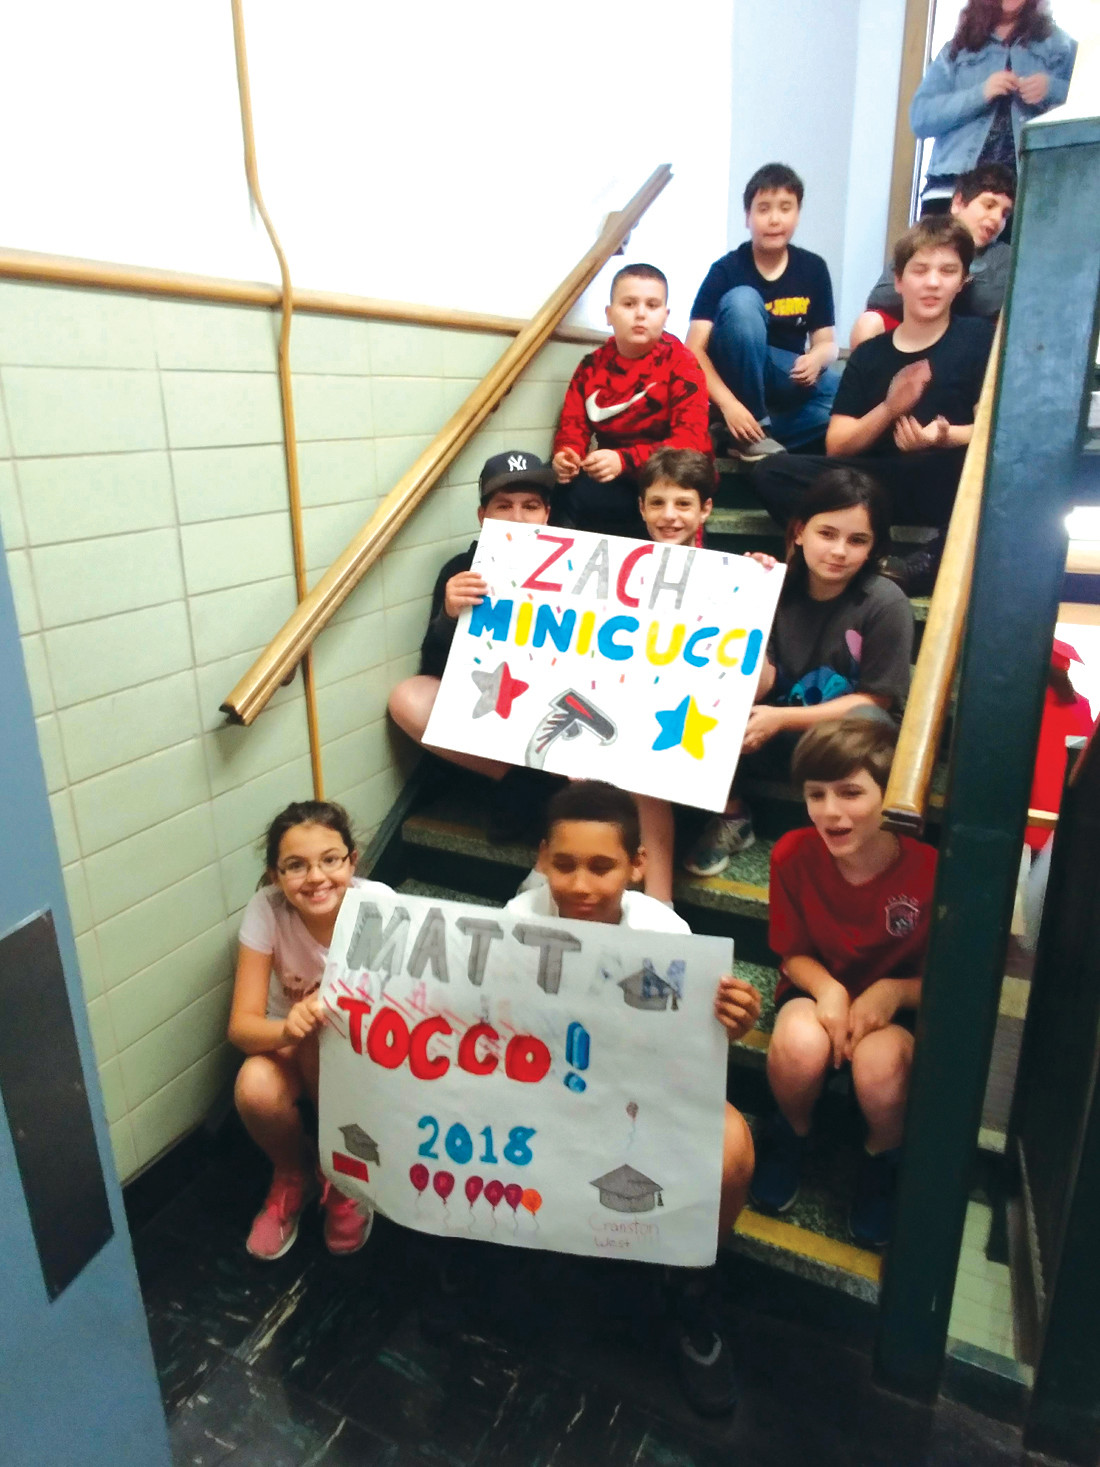 SPECIAL PERSONALIZATION: At several schools, the students had made personalized signs and posters, and they waited for a glimpse of the alumni who had attended there.